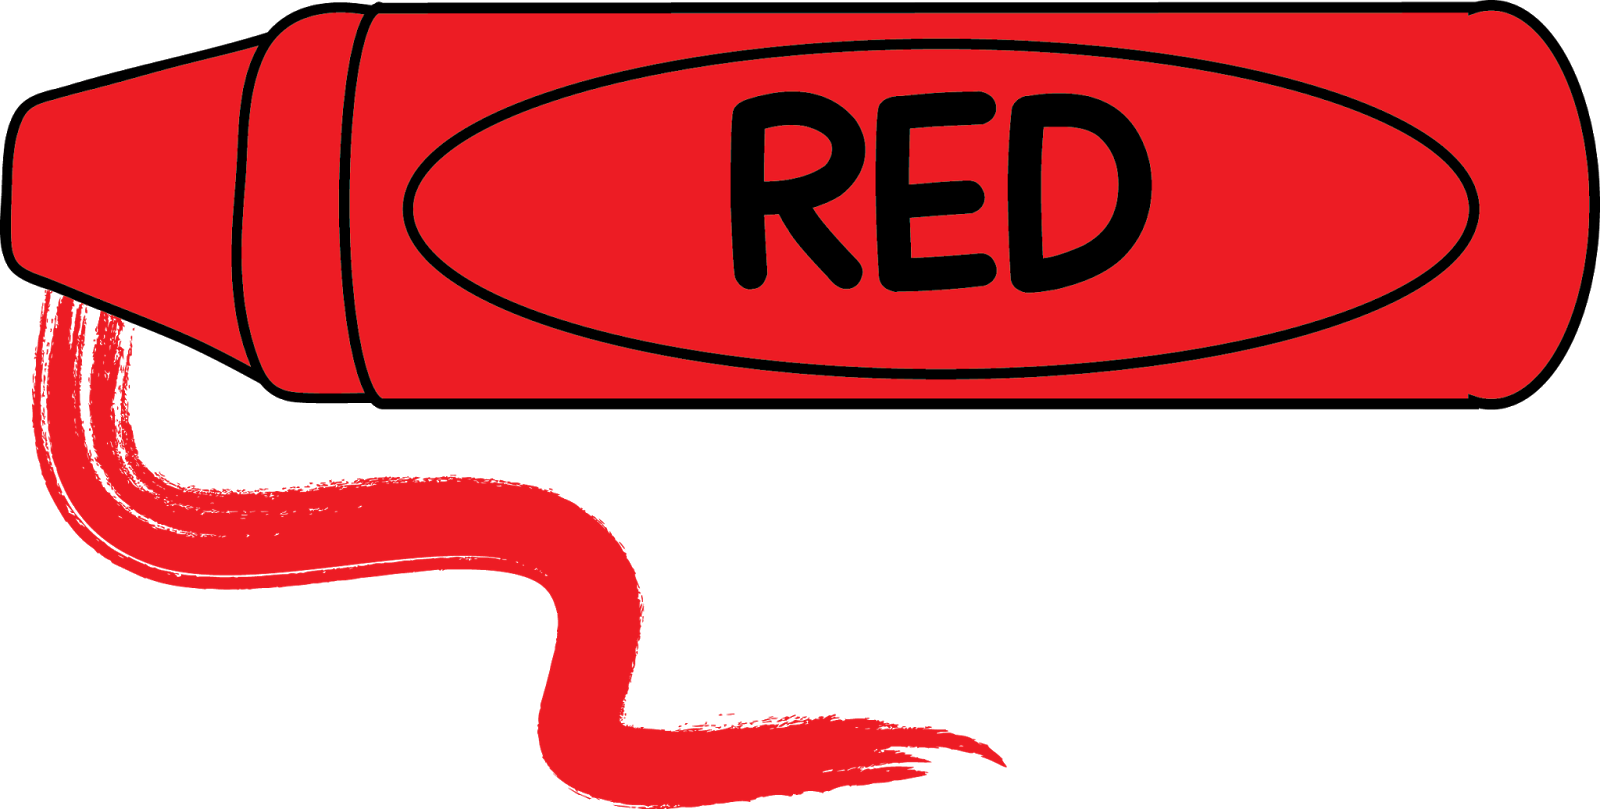 Red clipart.